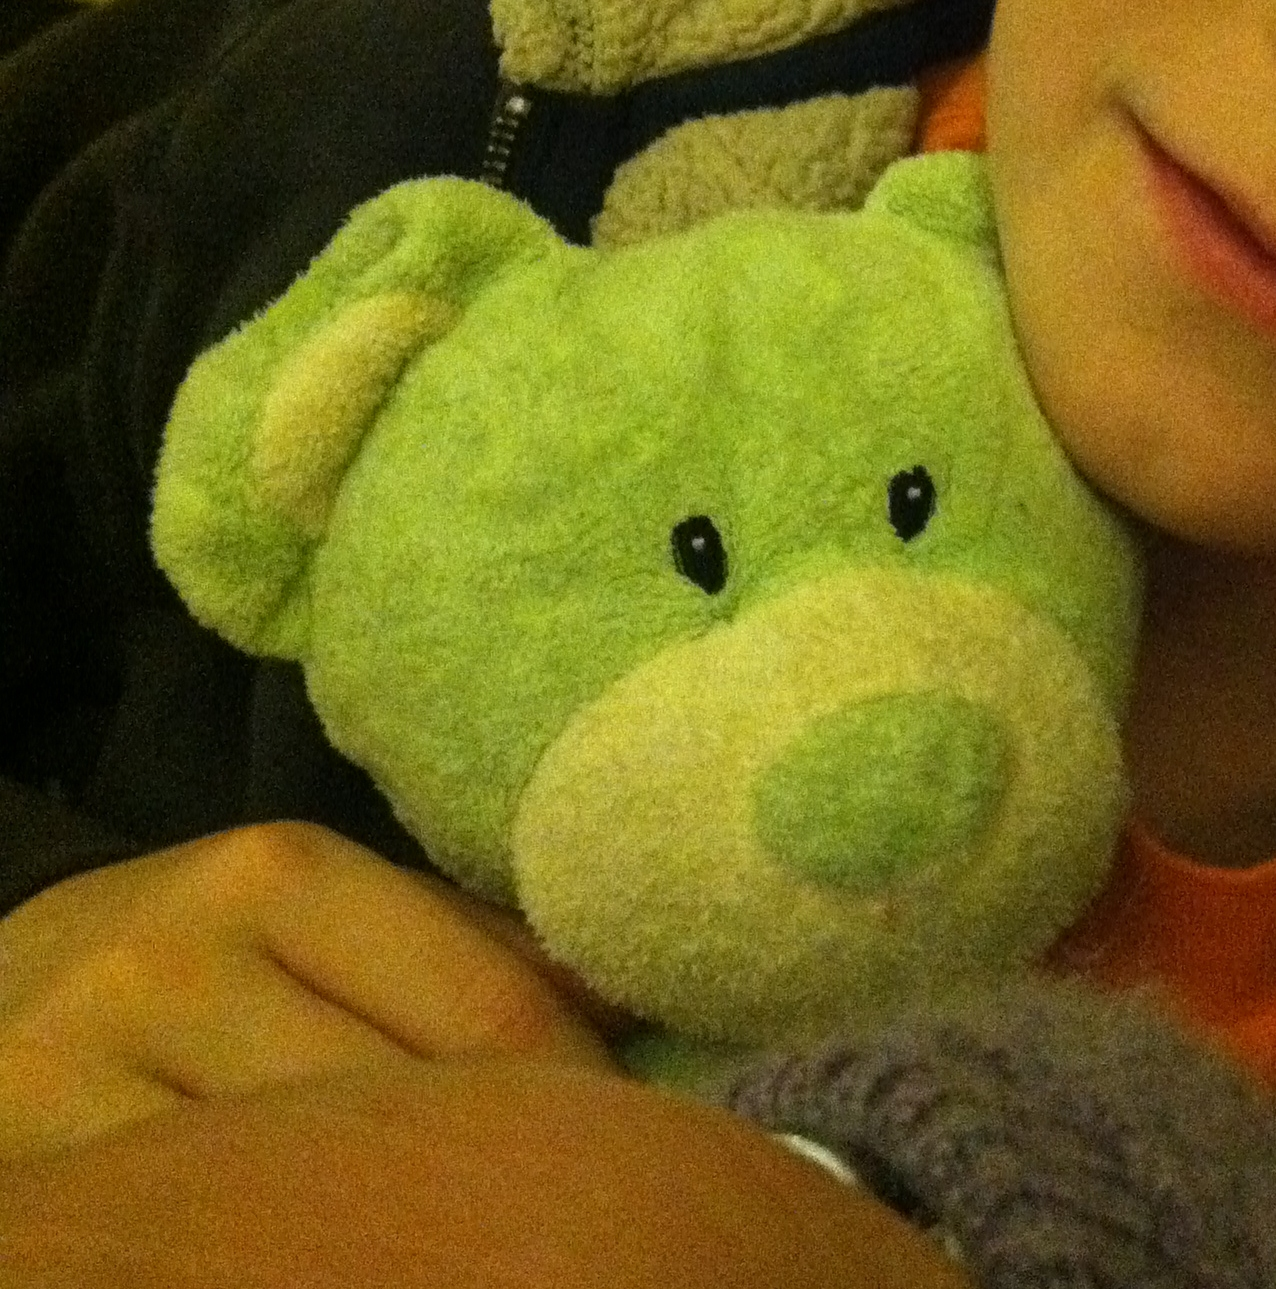 Green bear with long floppy arms and legs rattle inside - Green Bear is a soft spring green plush bear. He has a cream tummy and paws, with cream on his nose as well. He has long floppy green arms and legs, a tiny stubby green tail and a rattle inside his tummy. My son is inconsolable. He was left behind when we checked out of our rental home and although I have called the rental company, they said he was not found by the cleaning service. I would accept a replacement bear, and will pay a generous finders fee! Very generous! We are desperate. He is a good boy and I hate to see him so sad without his special friend.